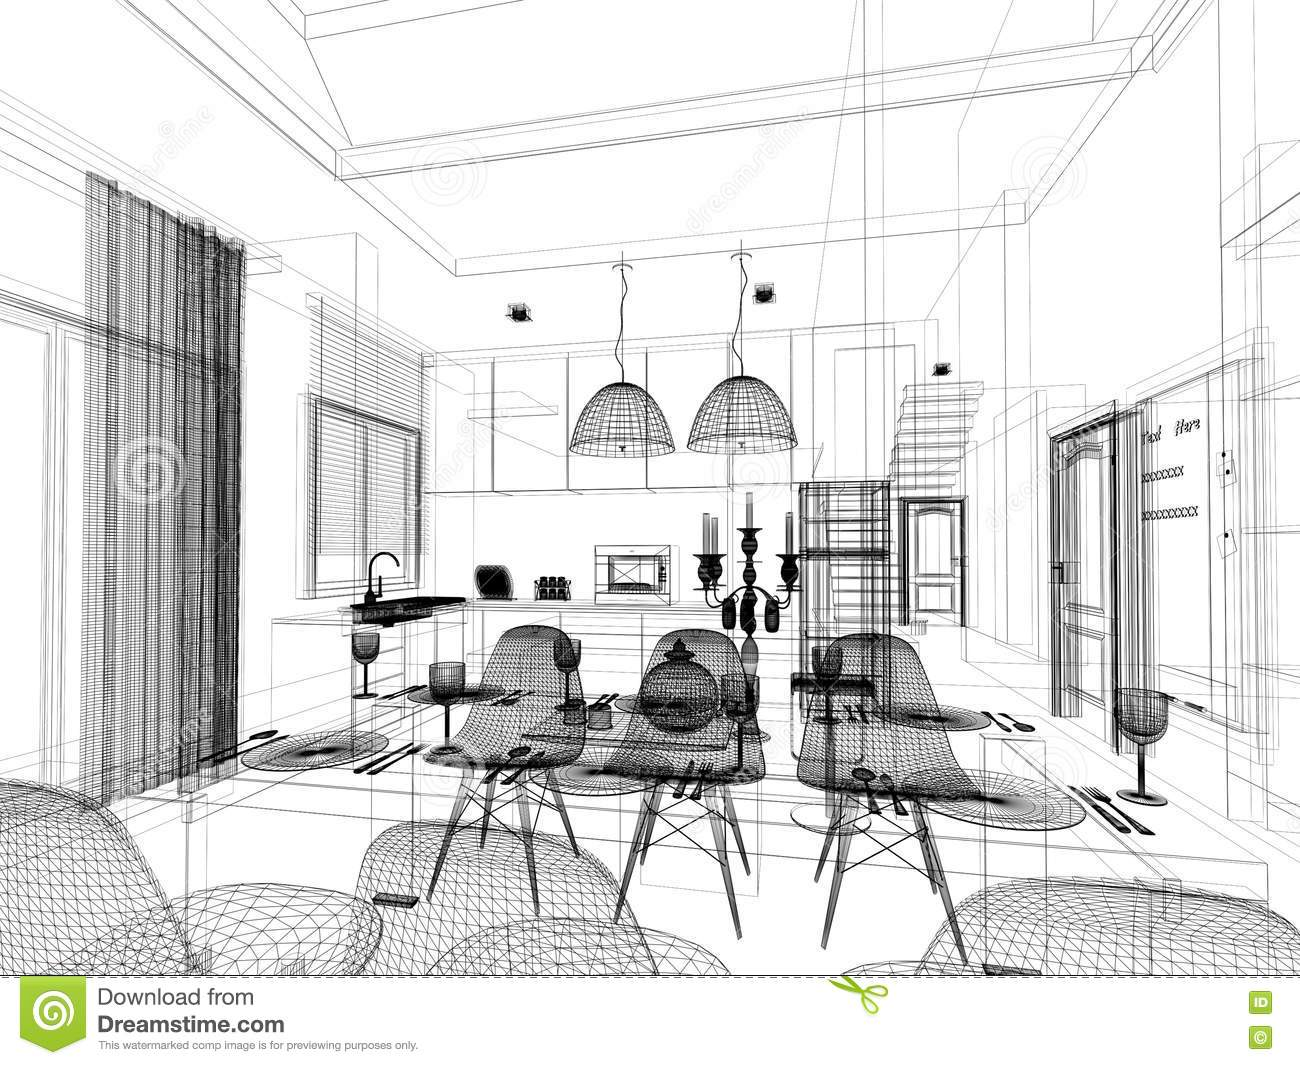 Abstract Sketch Design Of Interior Dining And Kitchen Room 3d Royalty Free Stock Images